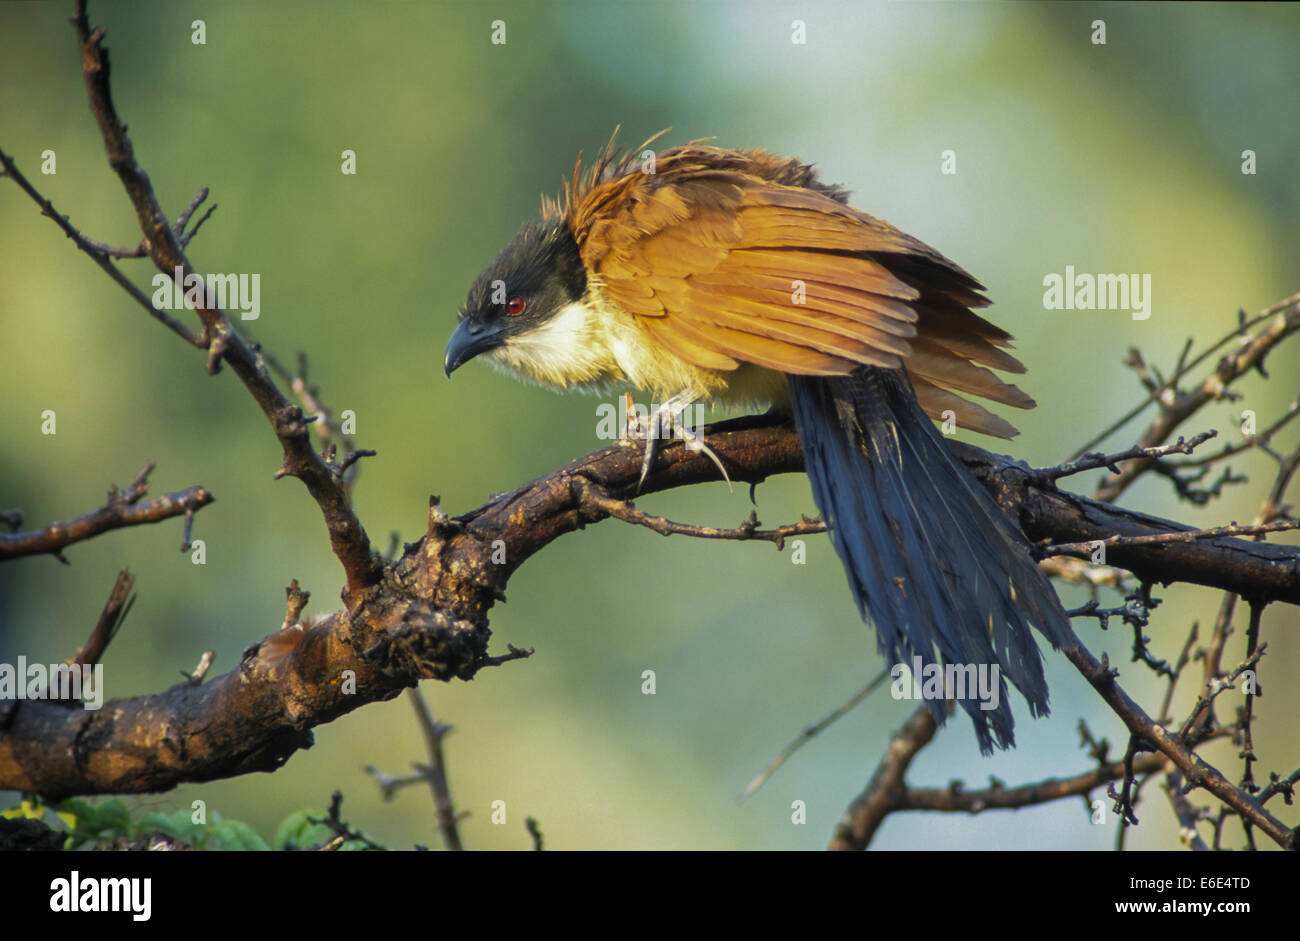 Burchell's Coucal (Centropus burchelli), ruffling up its plumage, Mkuzi Game Reserve, KwaZulu-Natal, South Africa - Stock Image